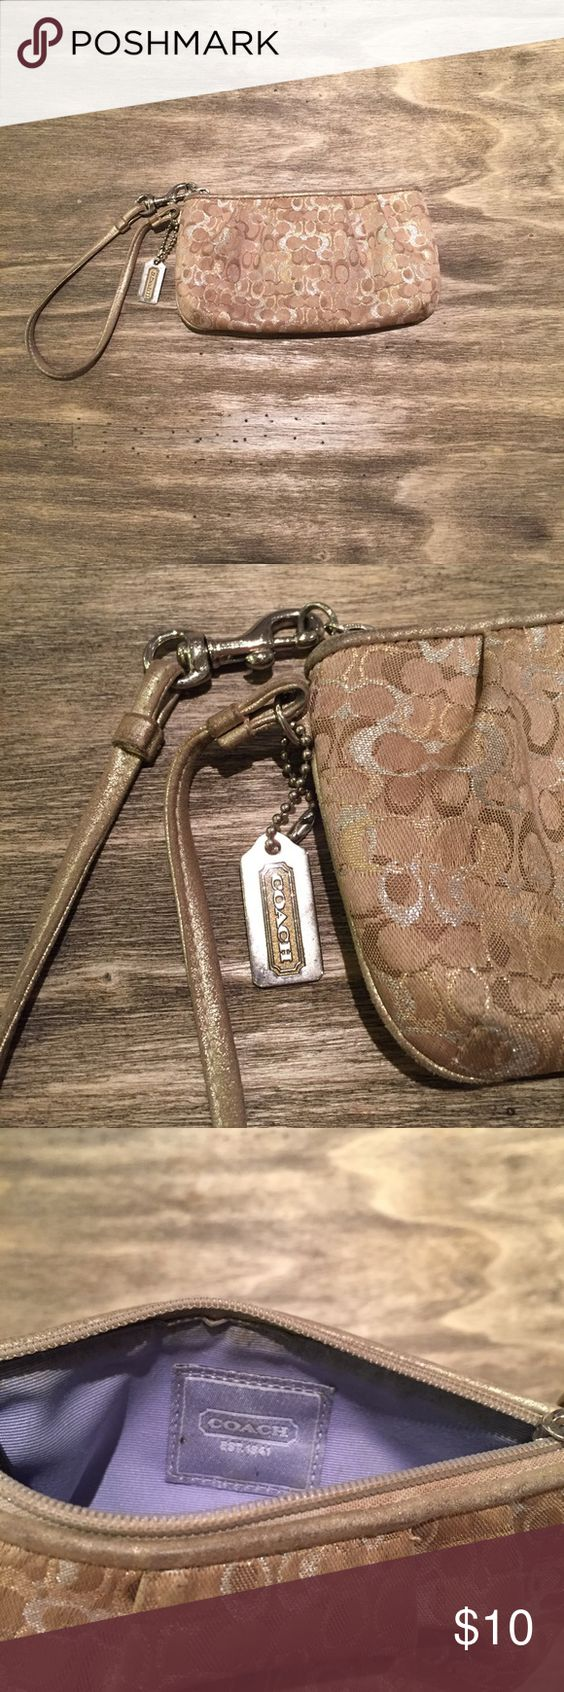 Gold Coach Wrislet Gold color wristlet with the Coach print. Inside is lavender with a little makeup marks. Coach Bags Clutches & Wristlets